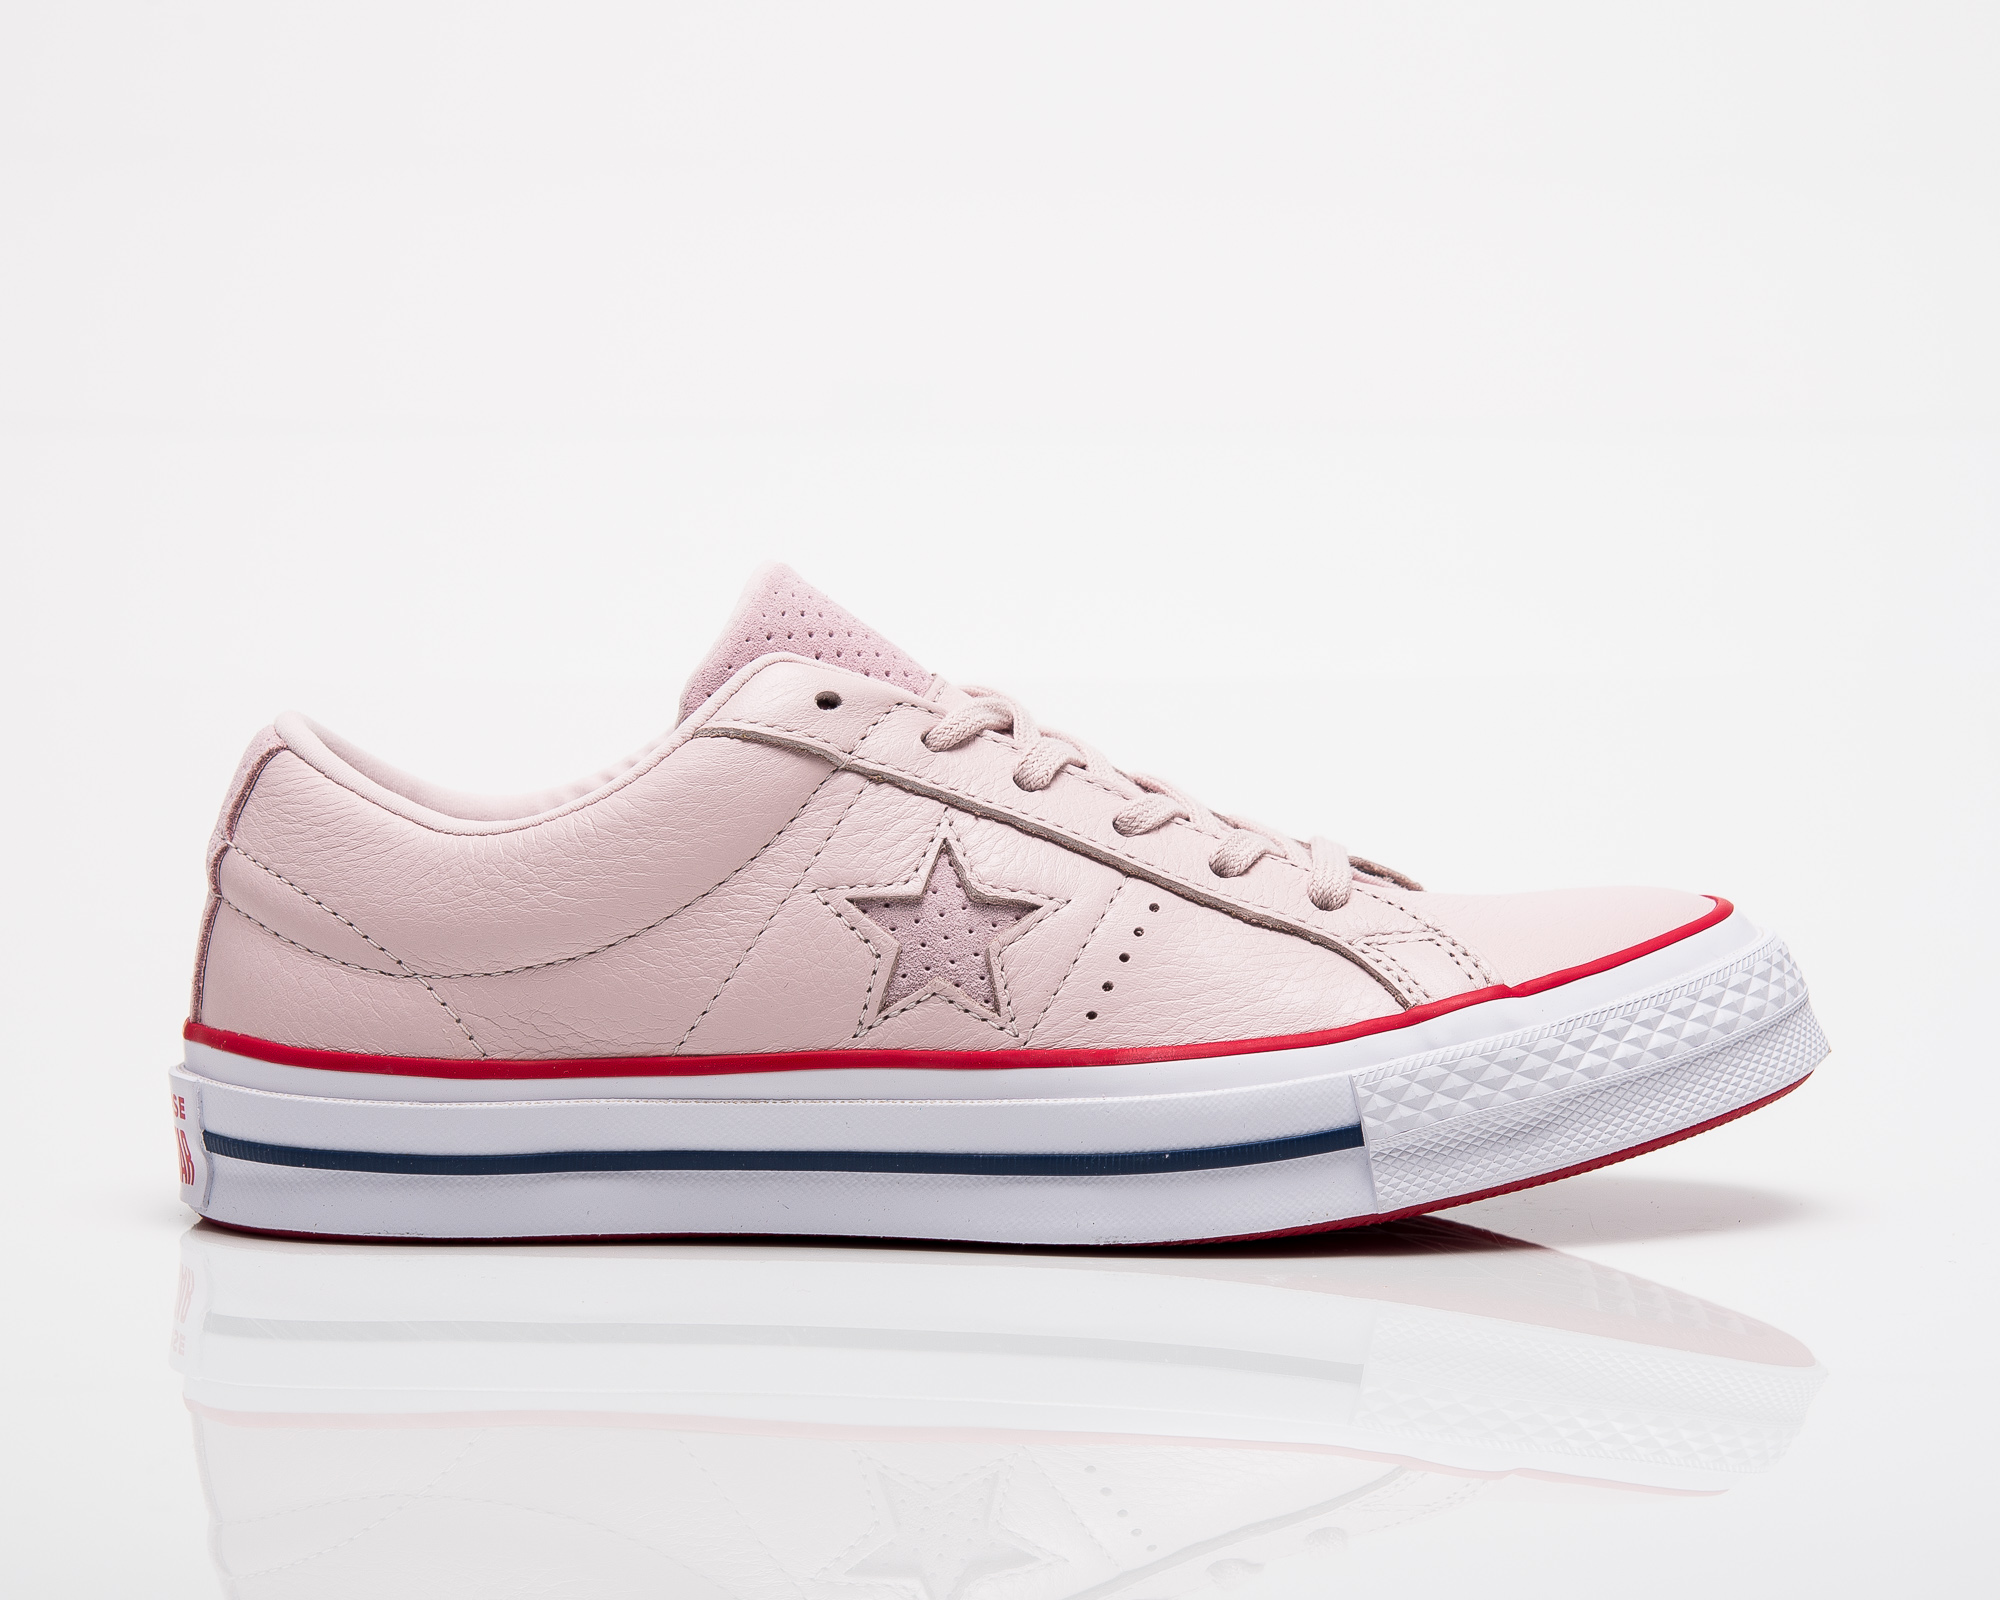 74610229d97a Converse One Star OX - Shoes Casual - Sporting goods